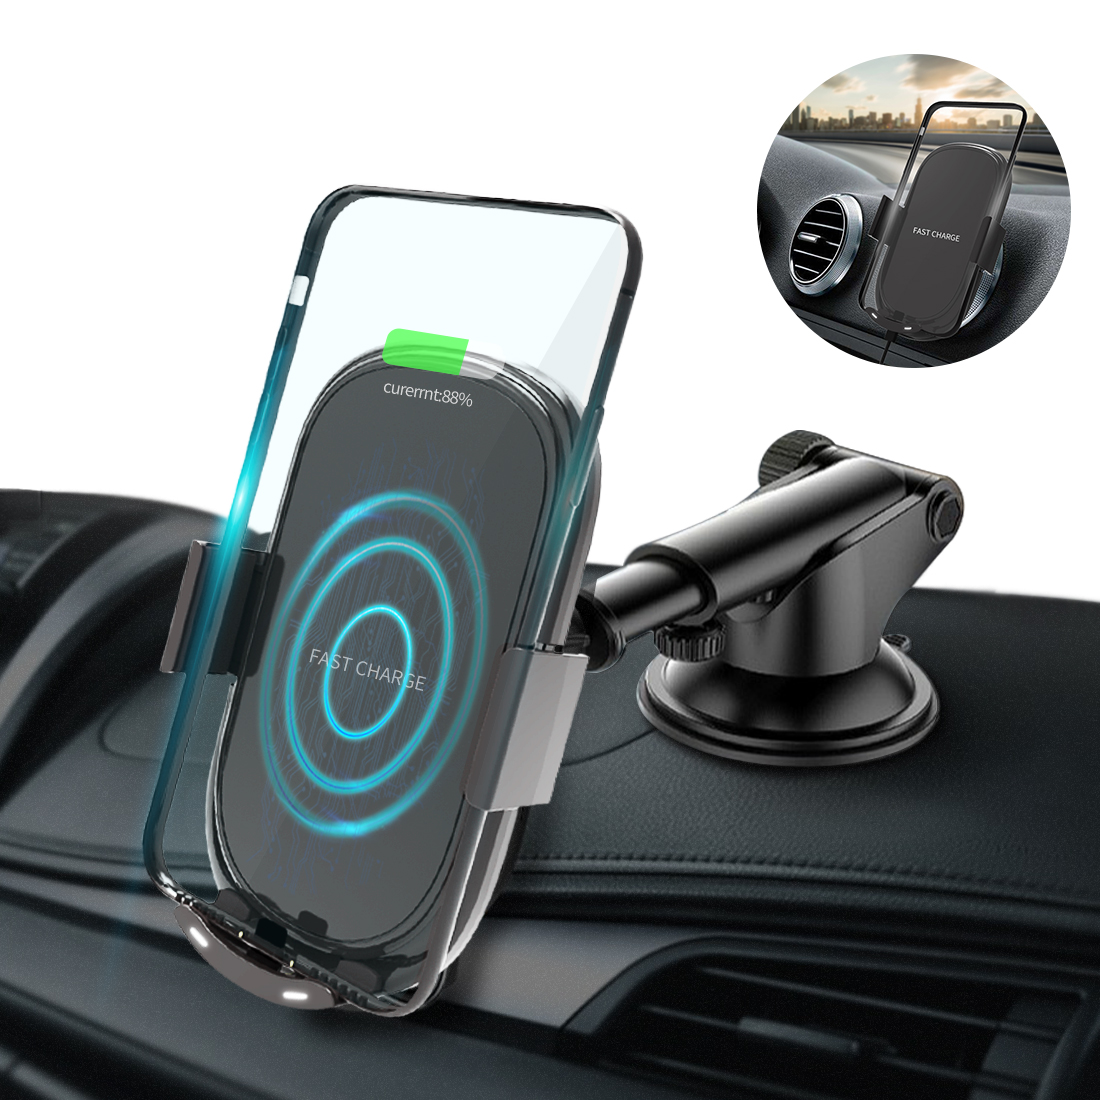 Car Wireless Charger For iPhone 8 Plus X XS Max Phone Qi Wireless Charging Car Phone Holder Stand For Samsung S9 Note 8 S7 Edge